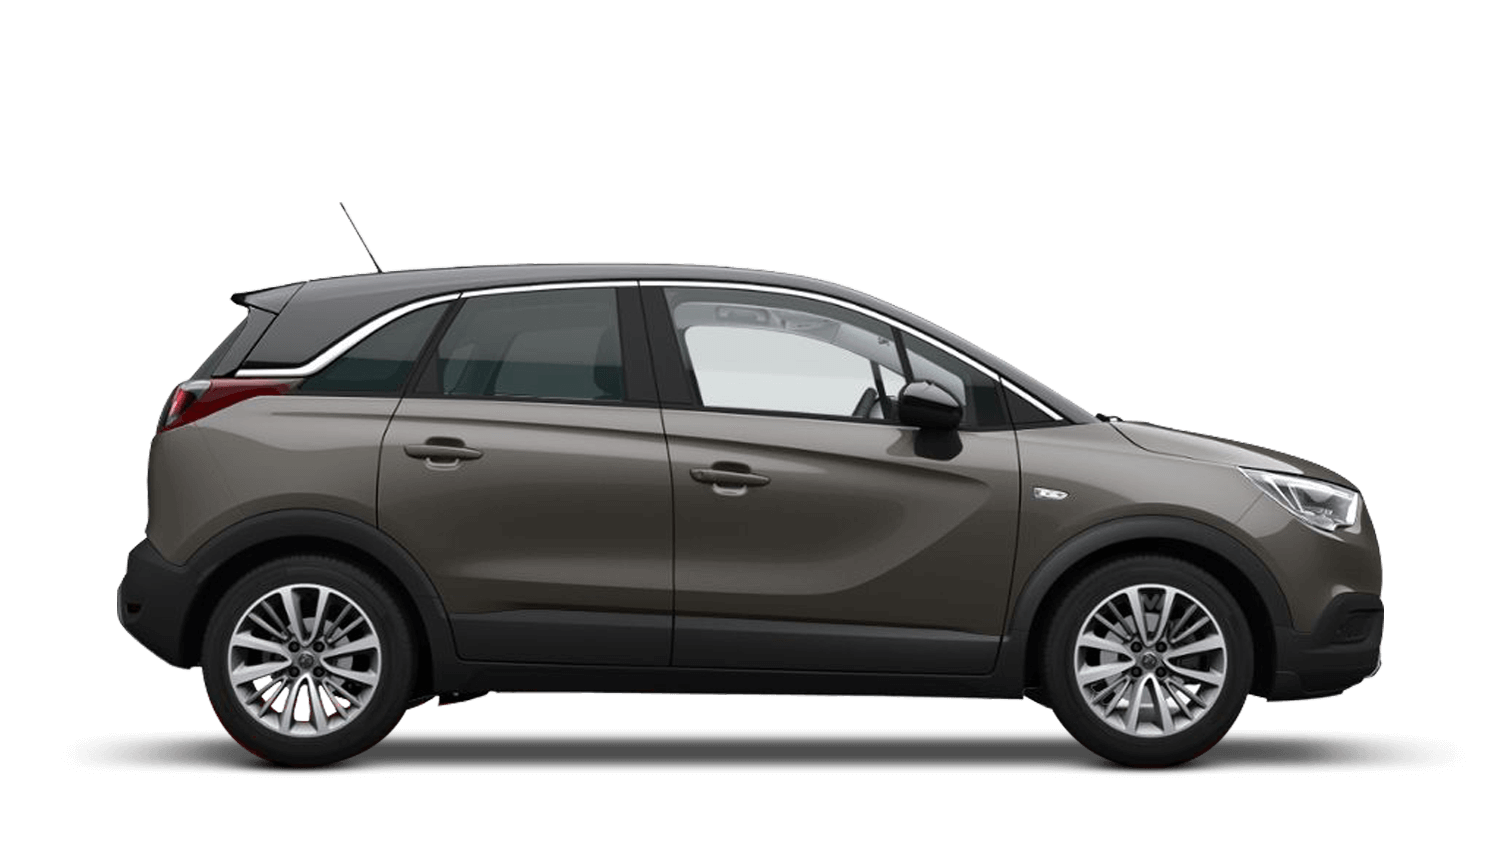 Moonstone Grey (Metallic) Vauxhall Crossland X